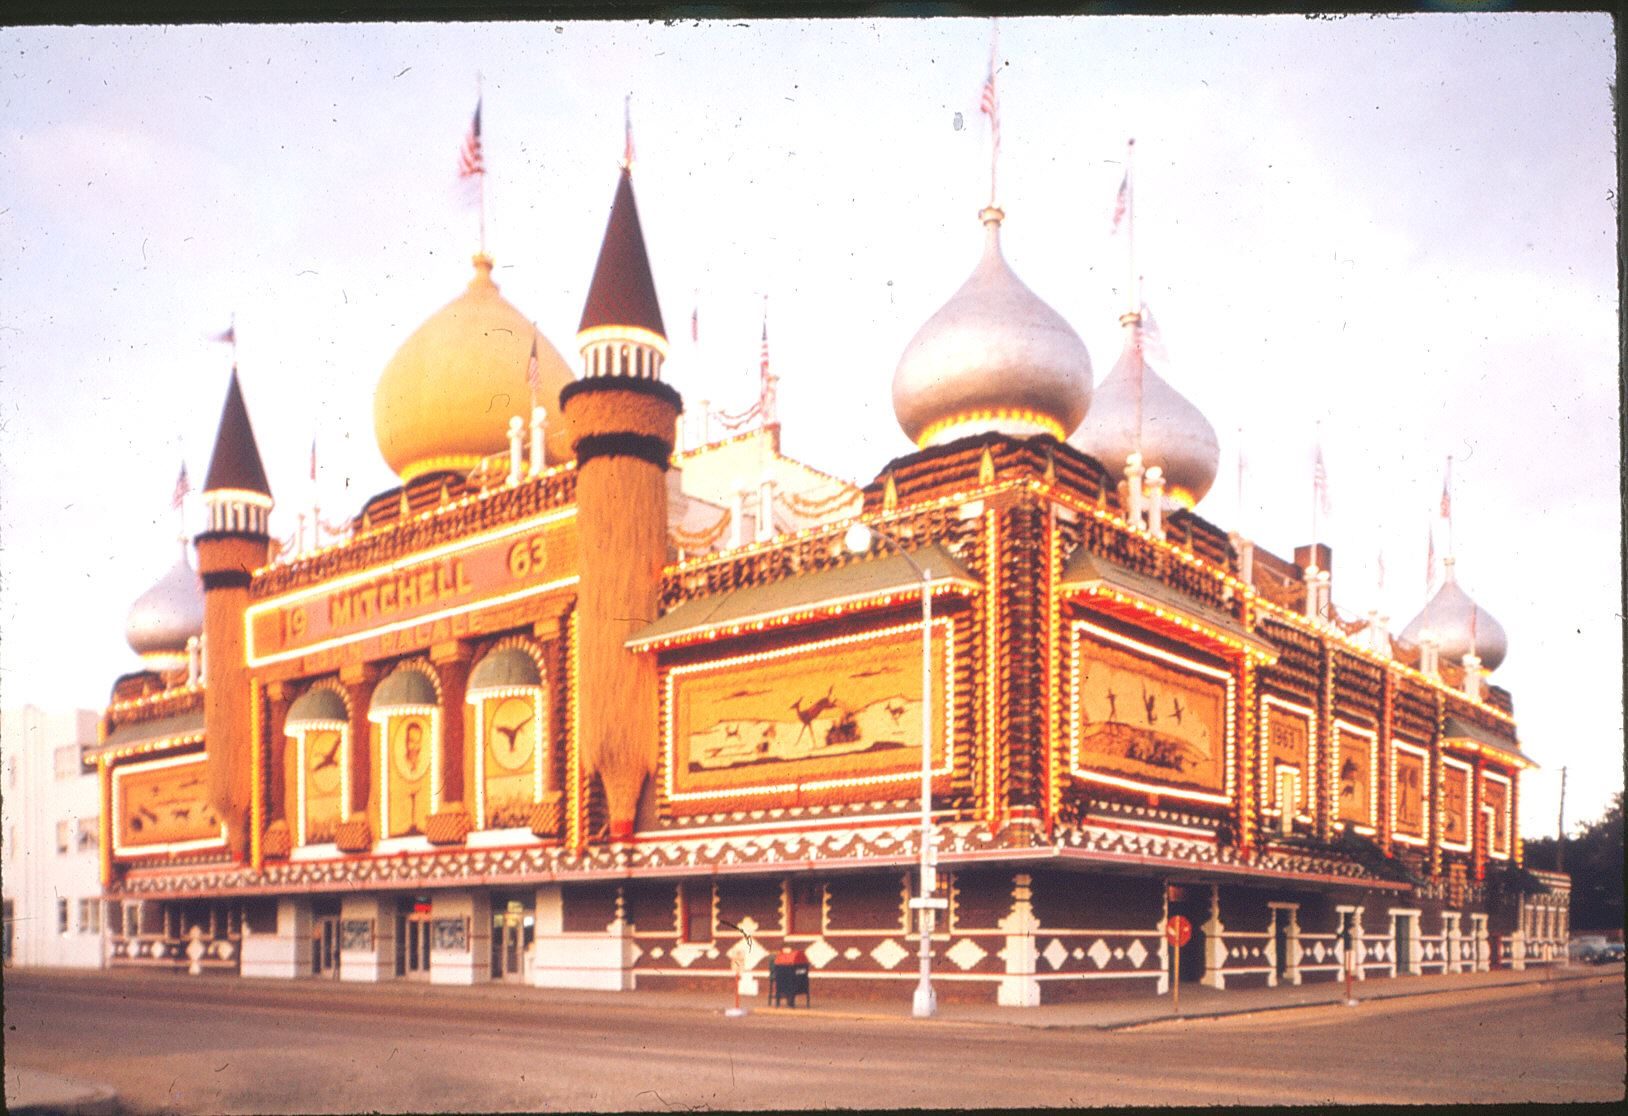 An image of the Corn Palace from 1963.